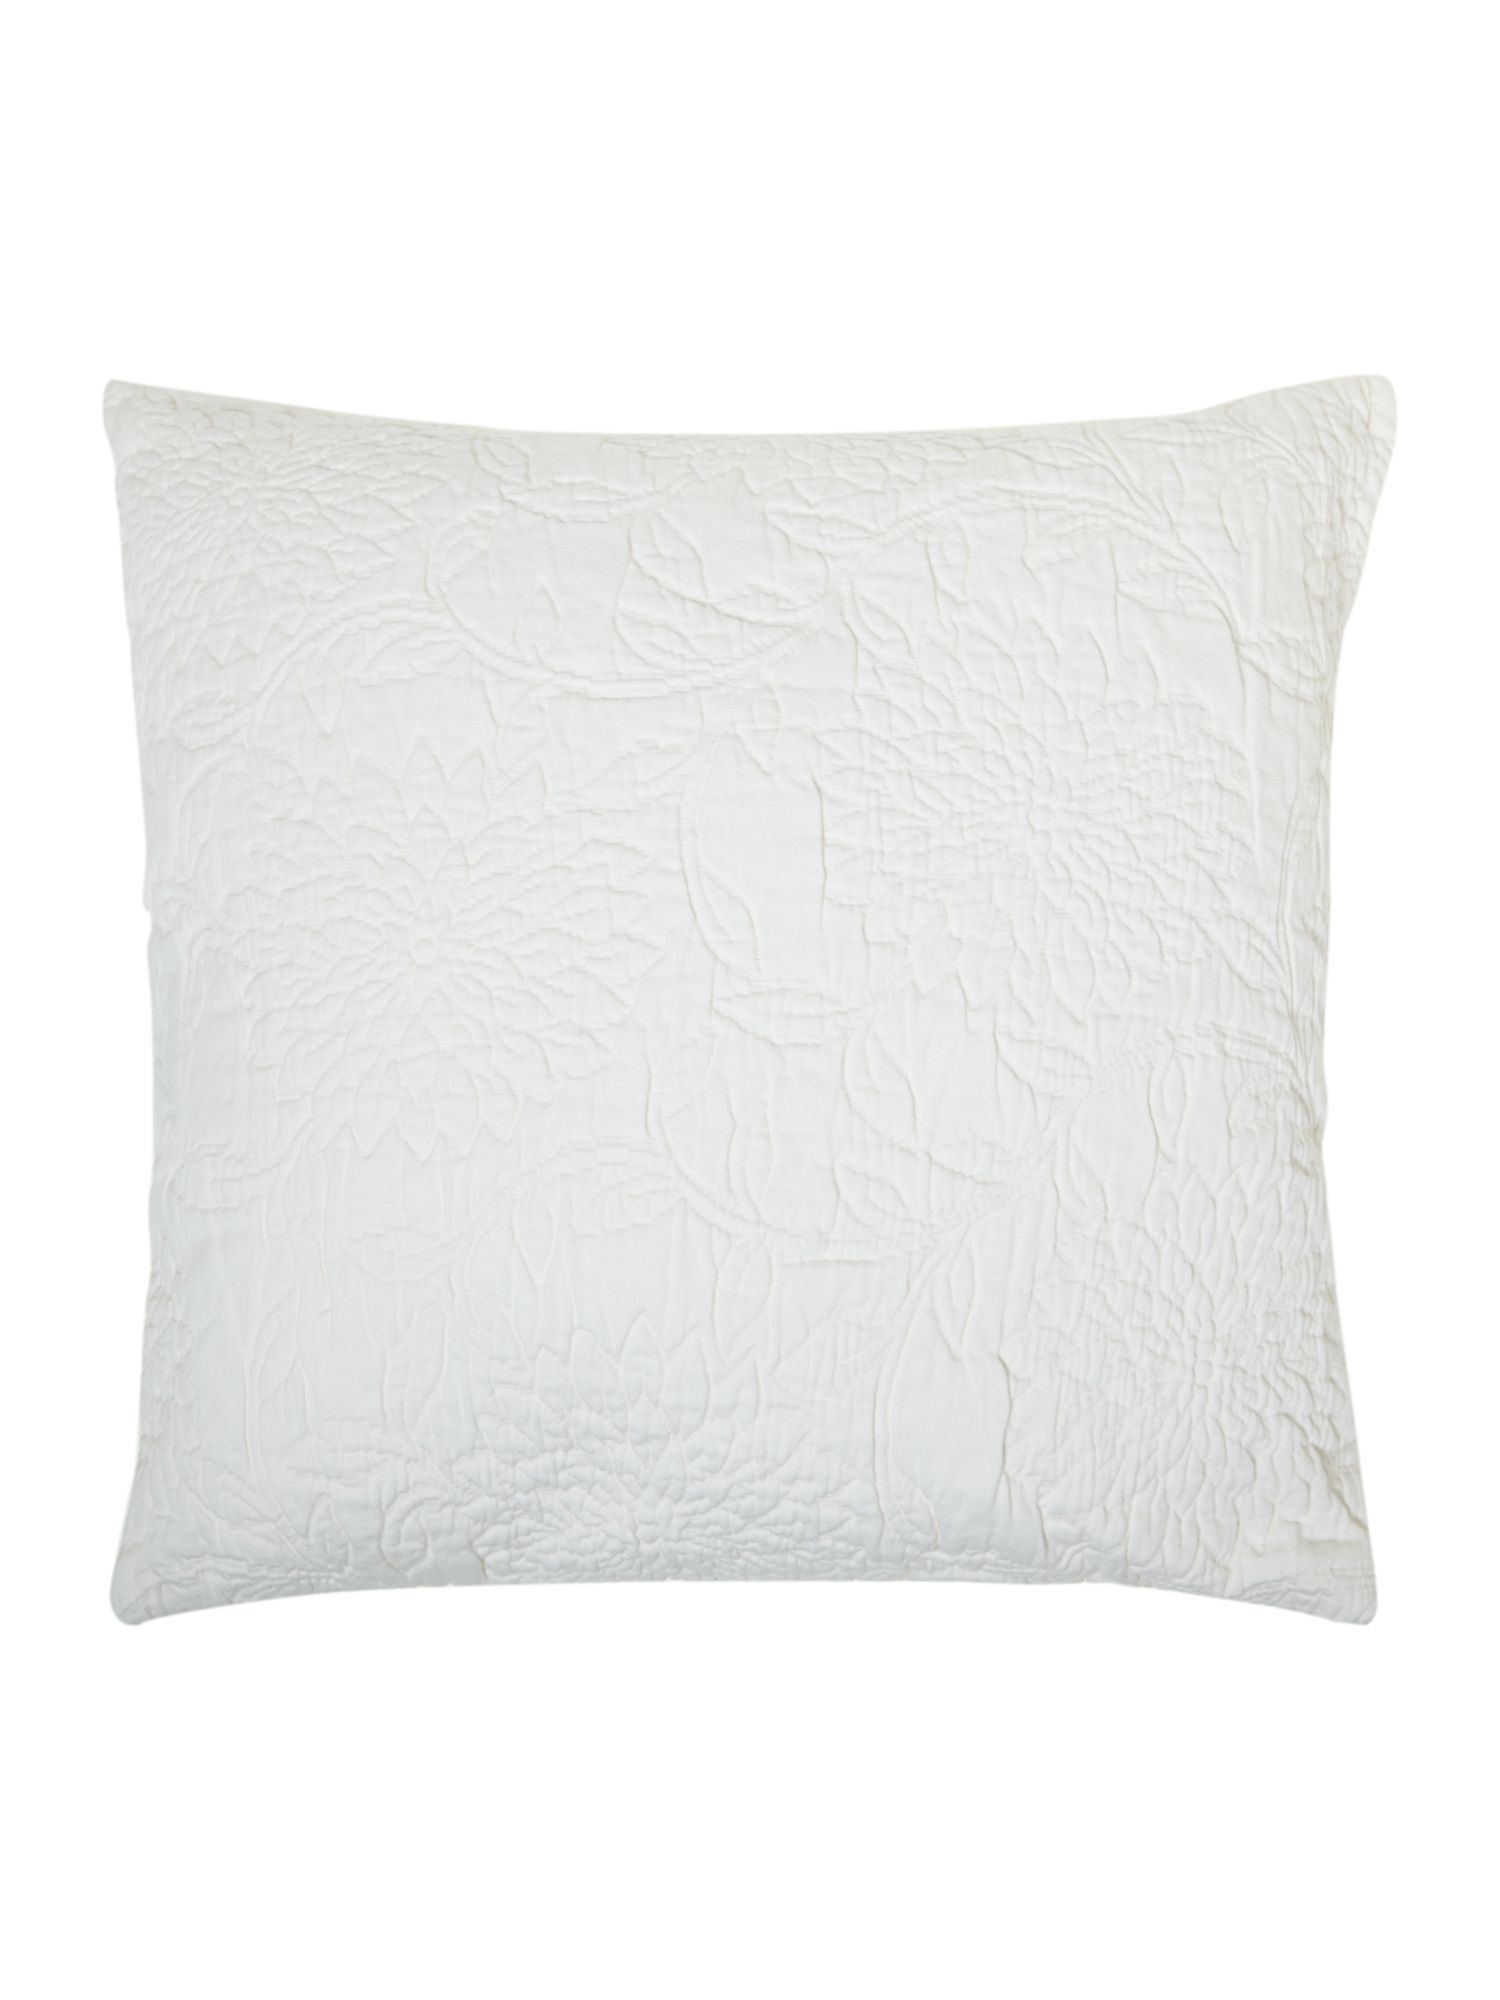 Natural matalasse cushion